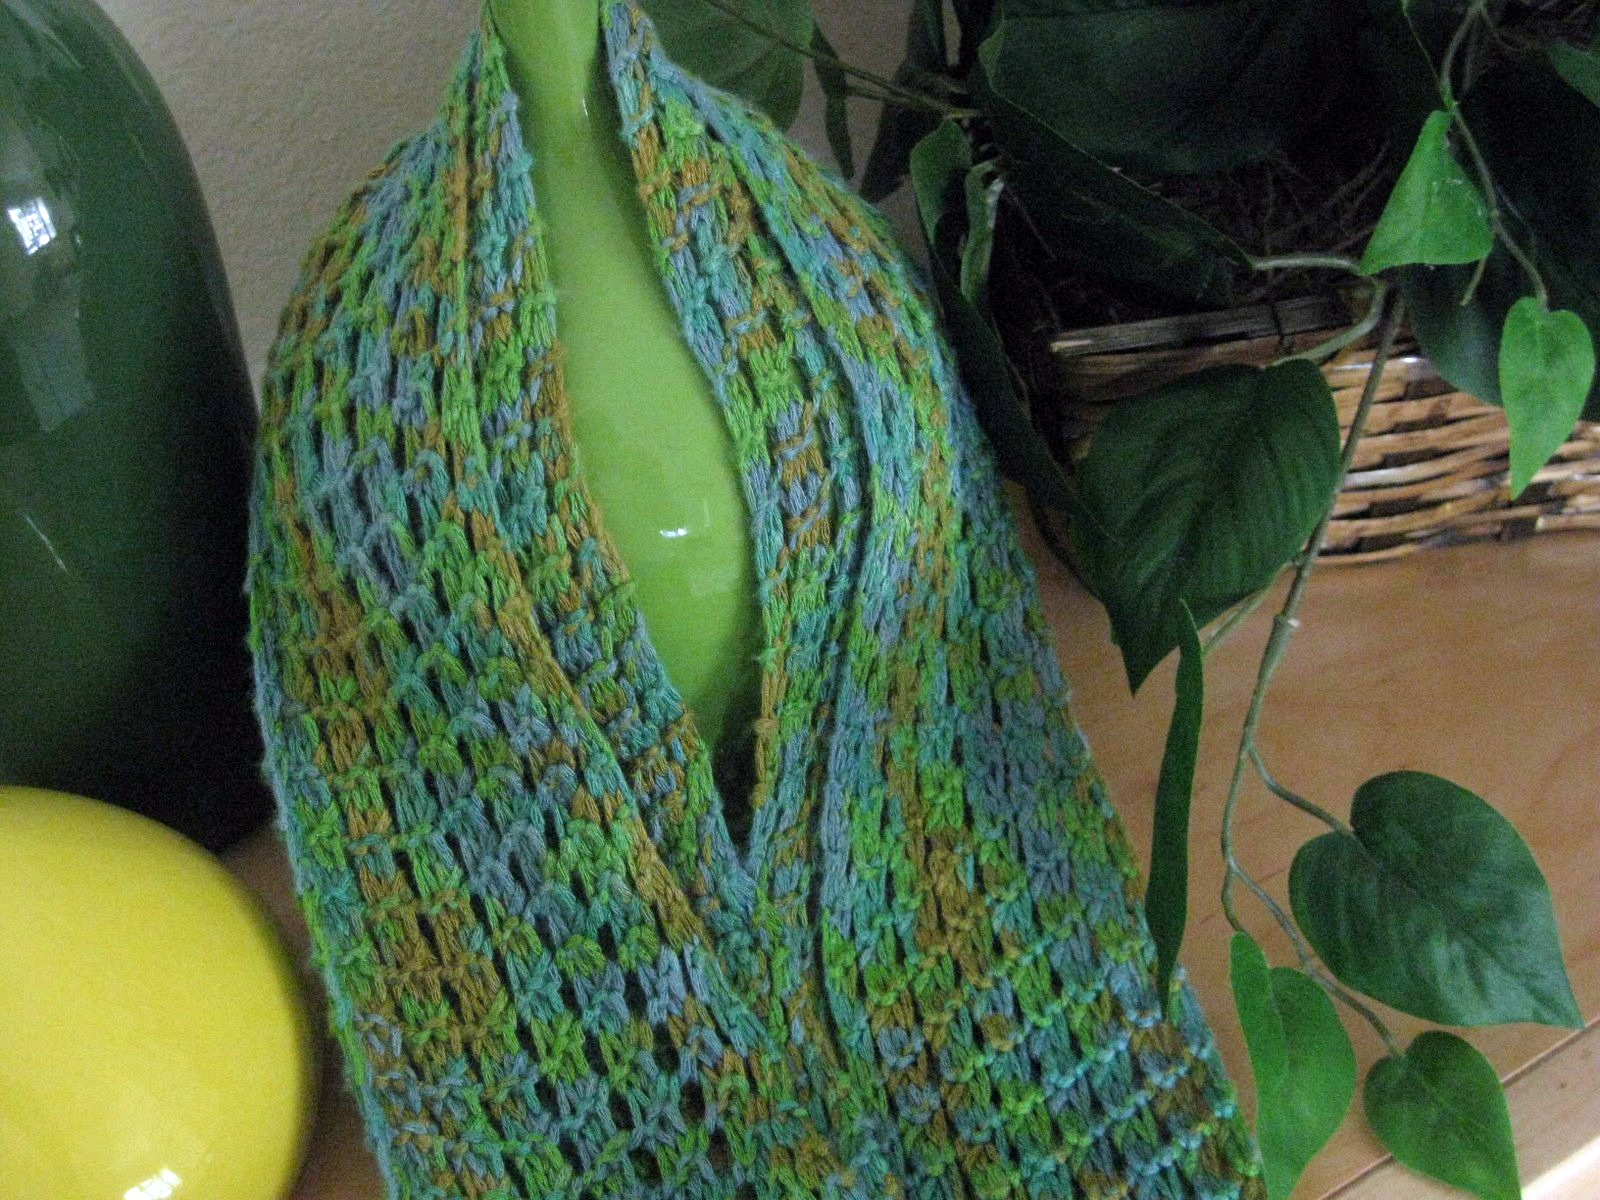 golden bird knits: Mesh bamboo scarf knitting pattern